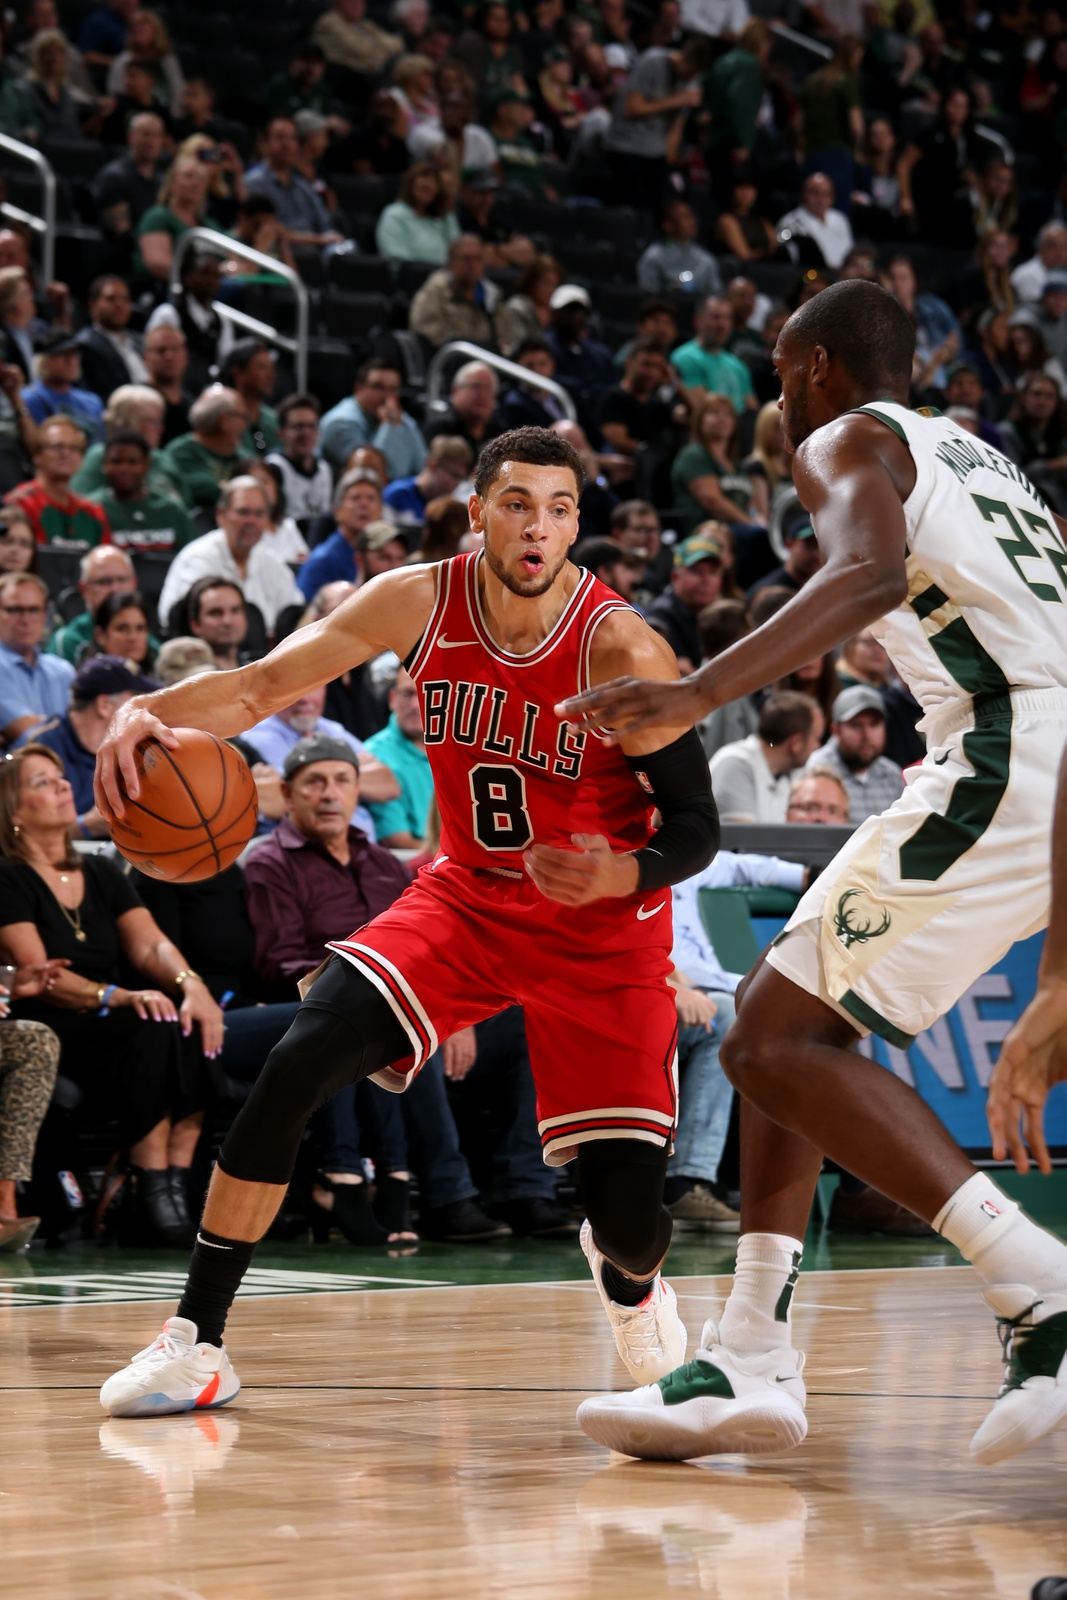 Zach LaVine #8 of the Chicago Bulls handles the ball against the Milwaukee Bucks during a pre-season game on October 3, 2018 at Fiserv Forum, in Milwaukee, Wisconsin.